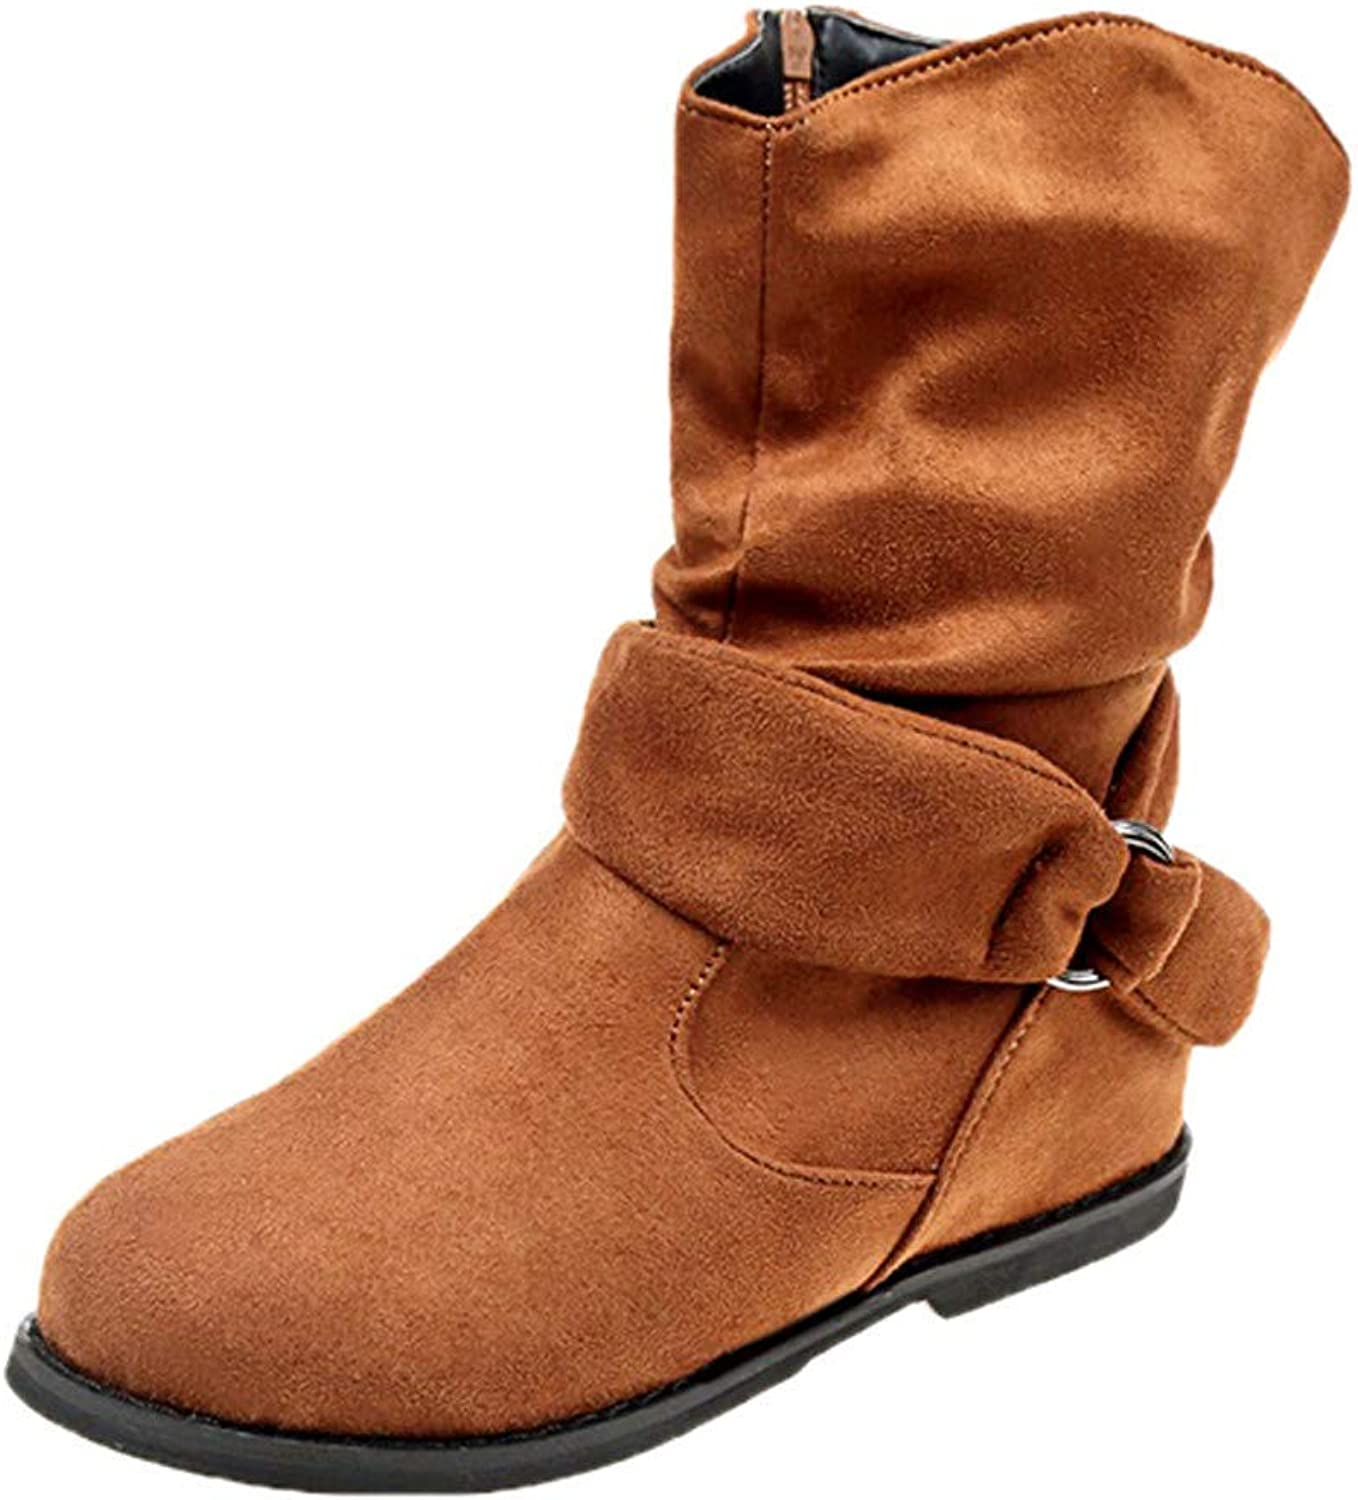 SUNNY Store Lace Up Suede Ankle Boots Women Leisure Solid Round Toe Flat shoes(Brown-7.5 M US)